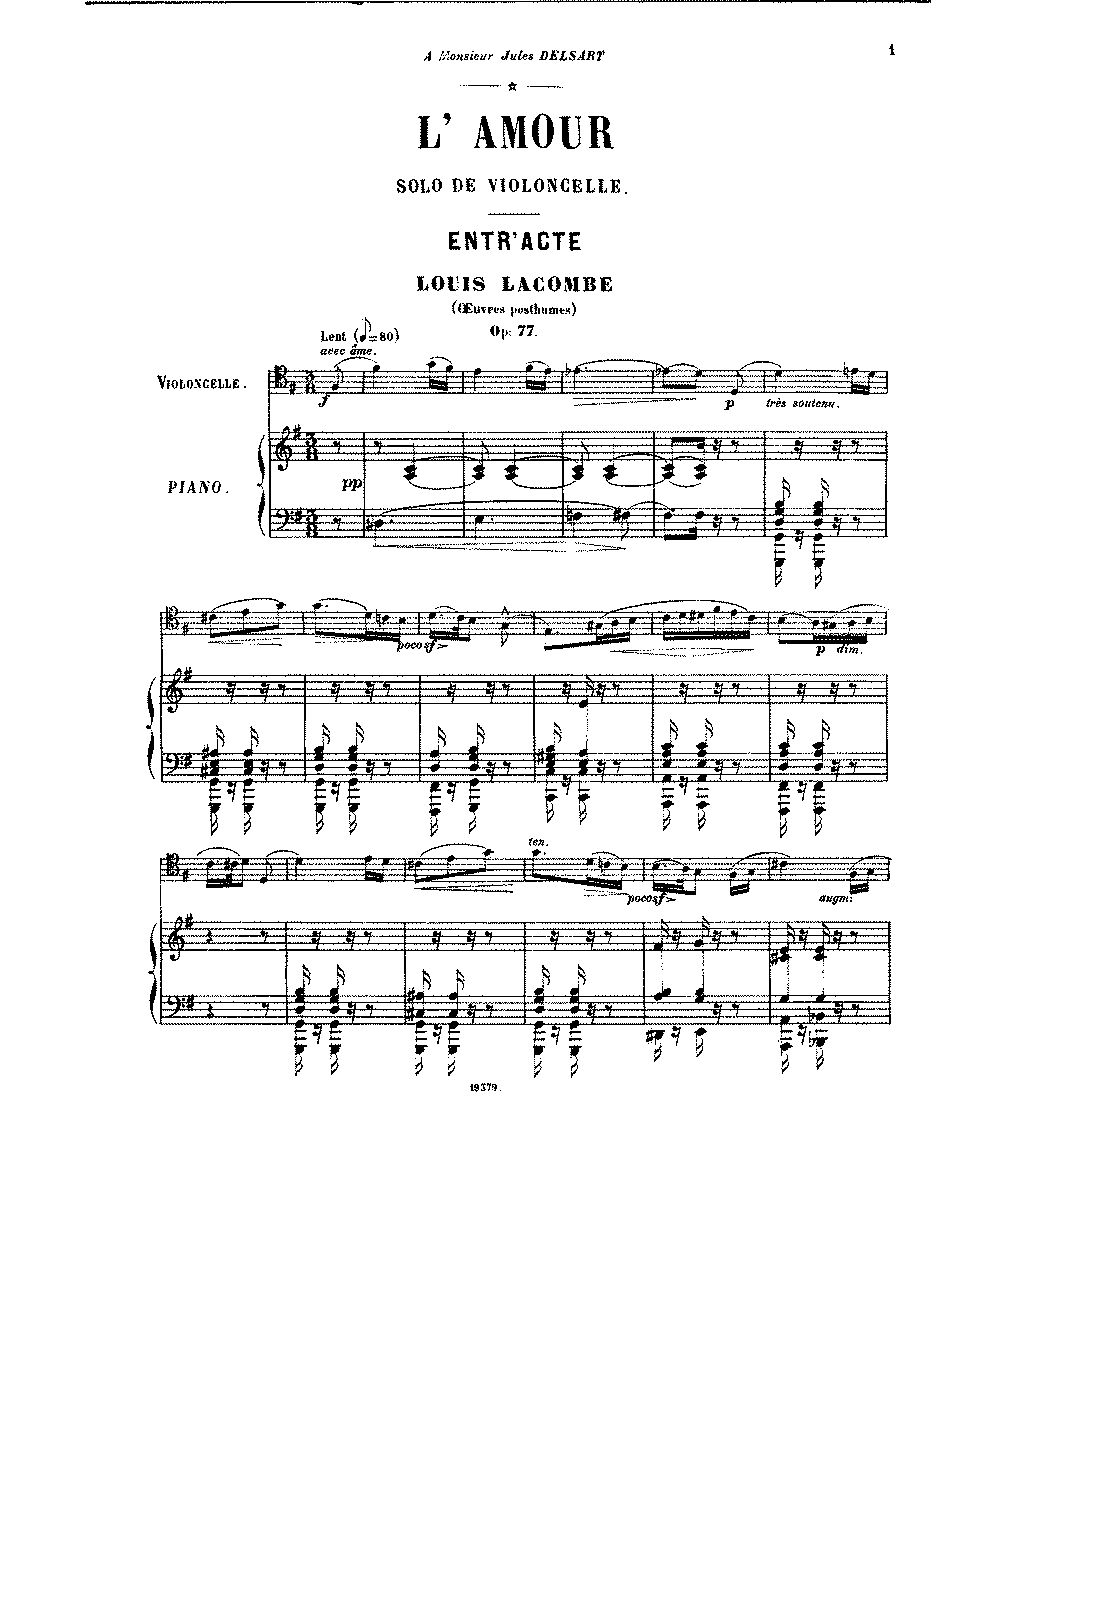 L'amour, Op 77 (Lacombe, Louis) - IMSLP/Petrucci Music Library: Free